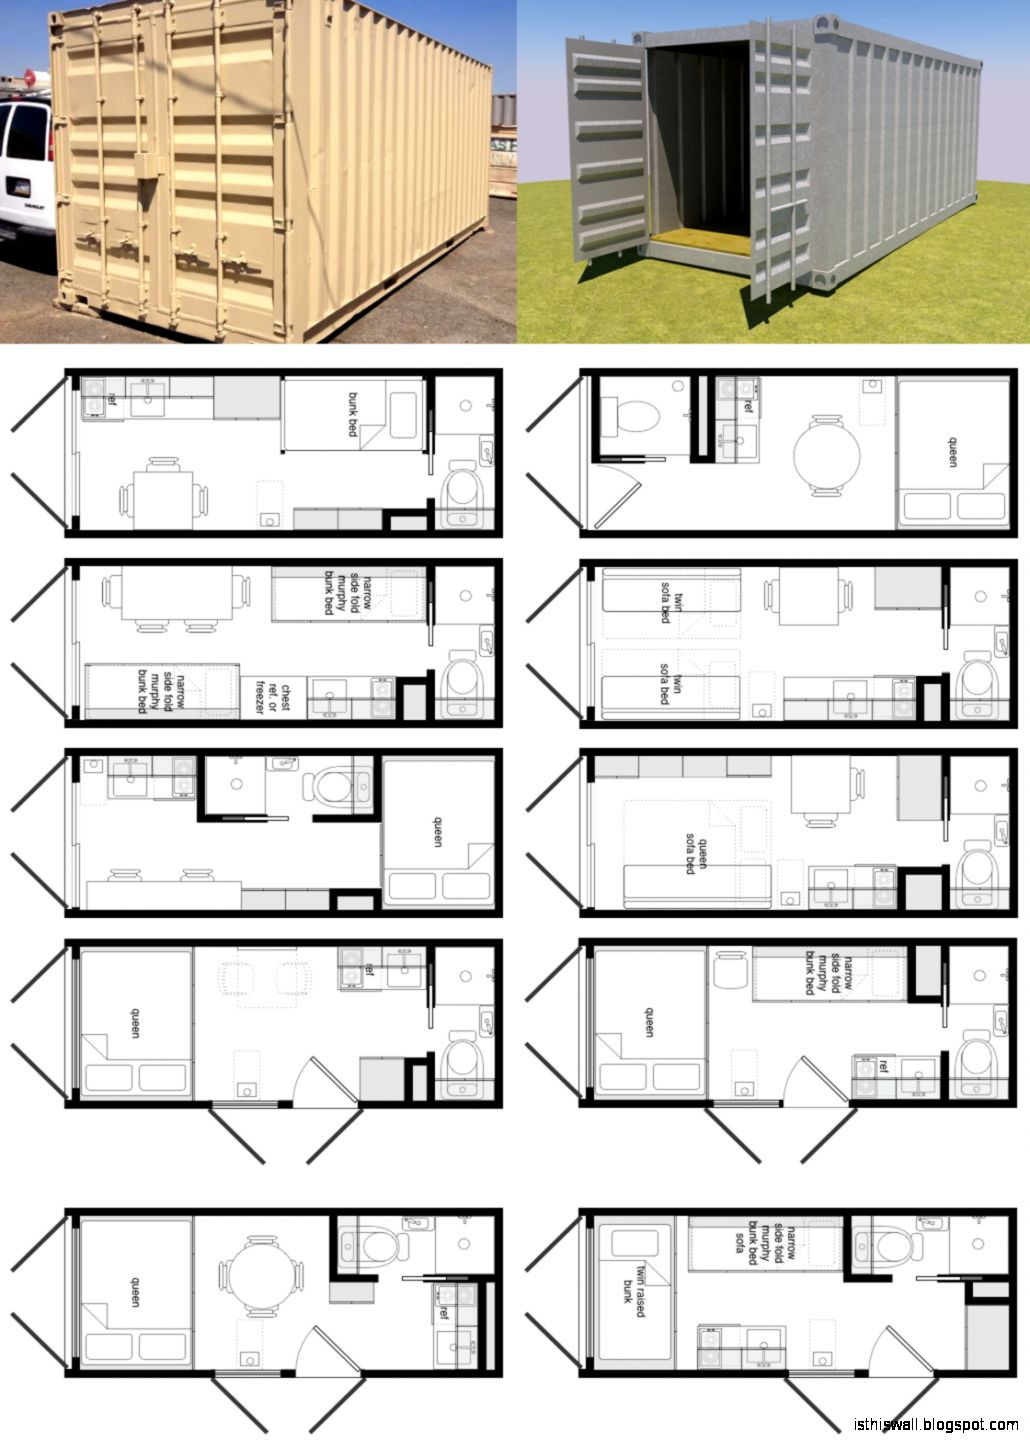 Container home floor plans designs this wallpapers for Container home building plans